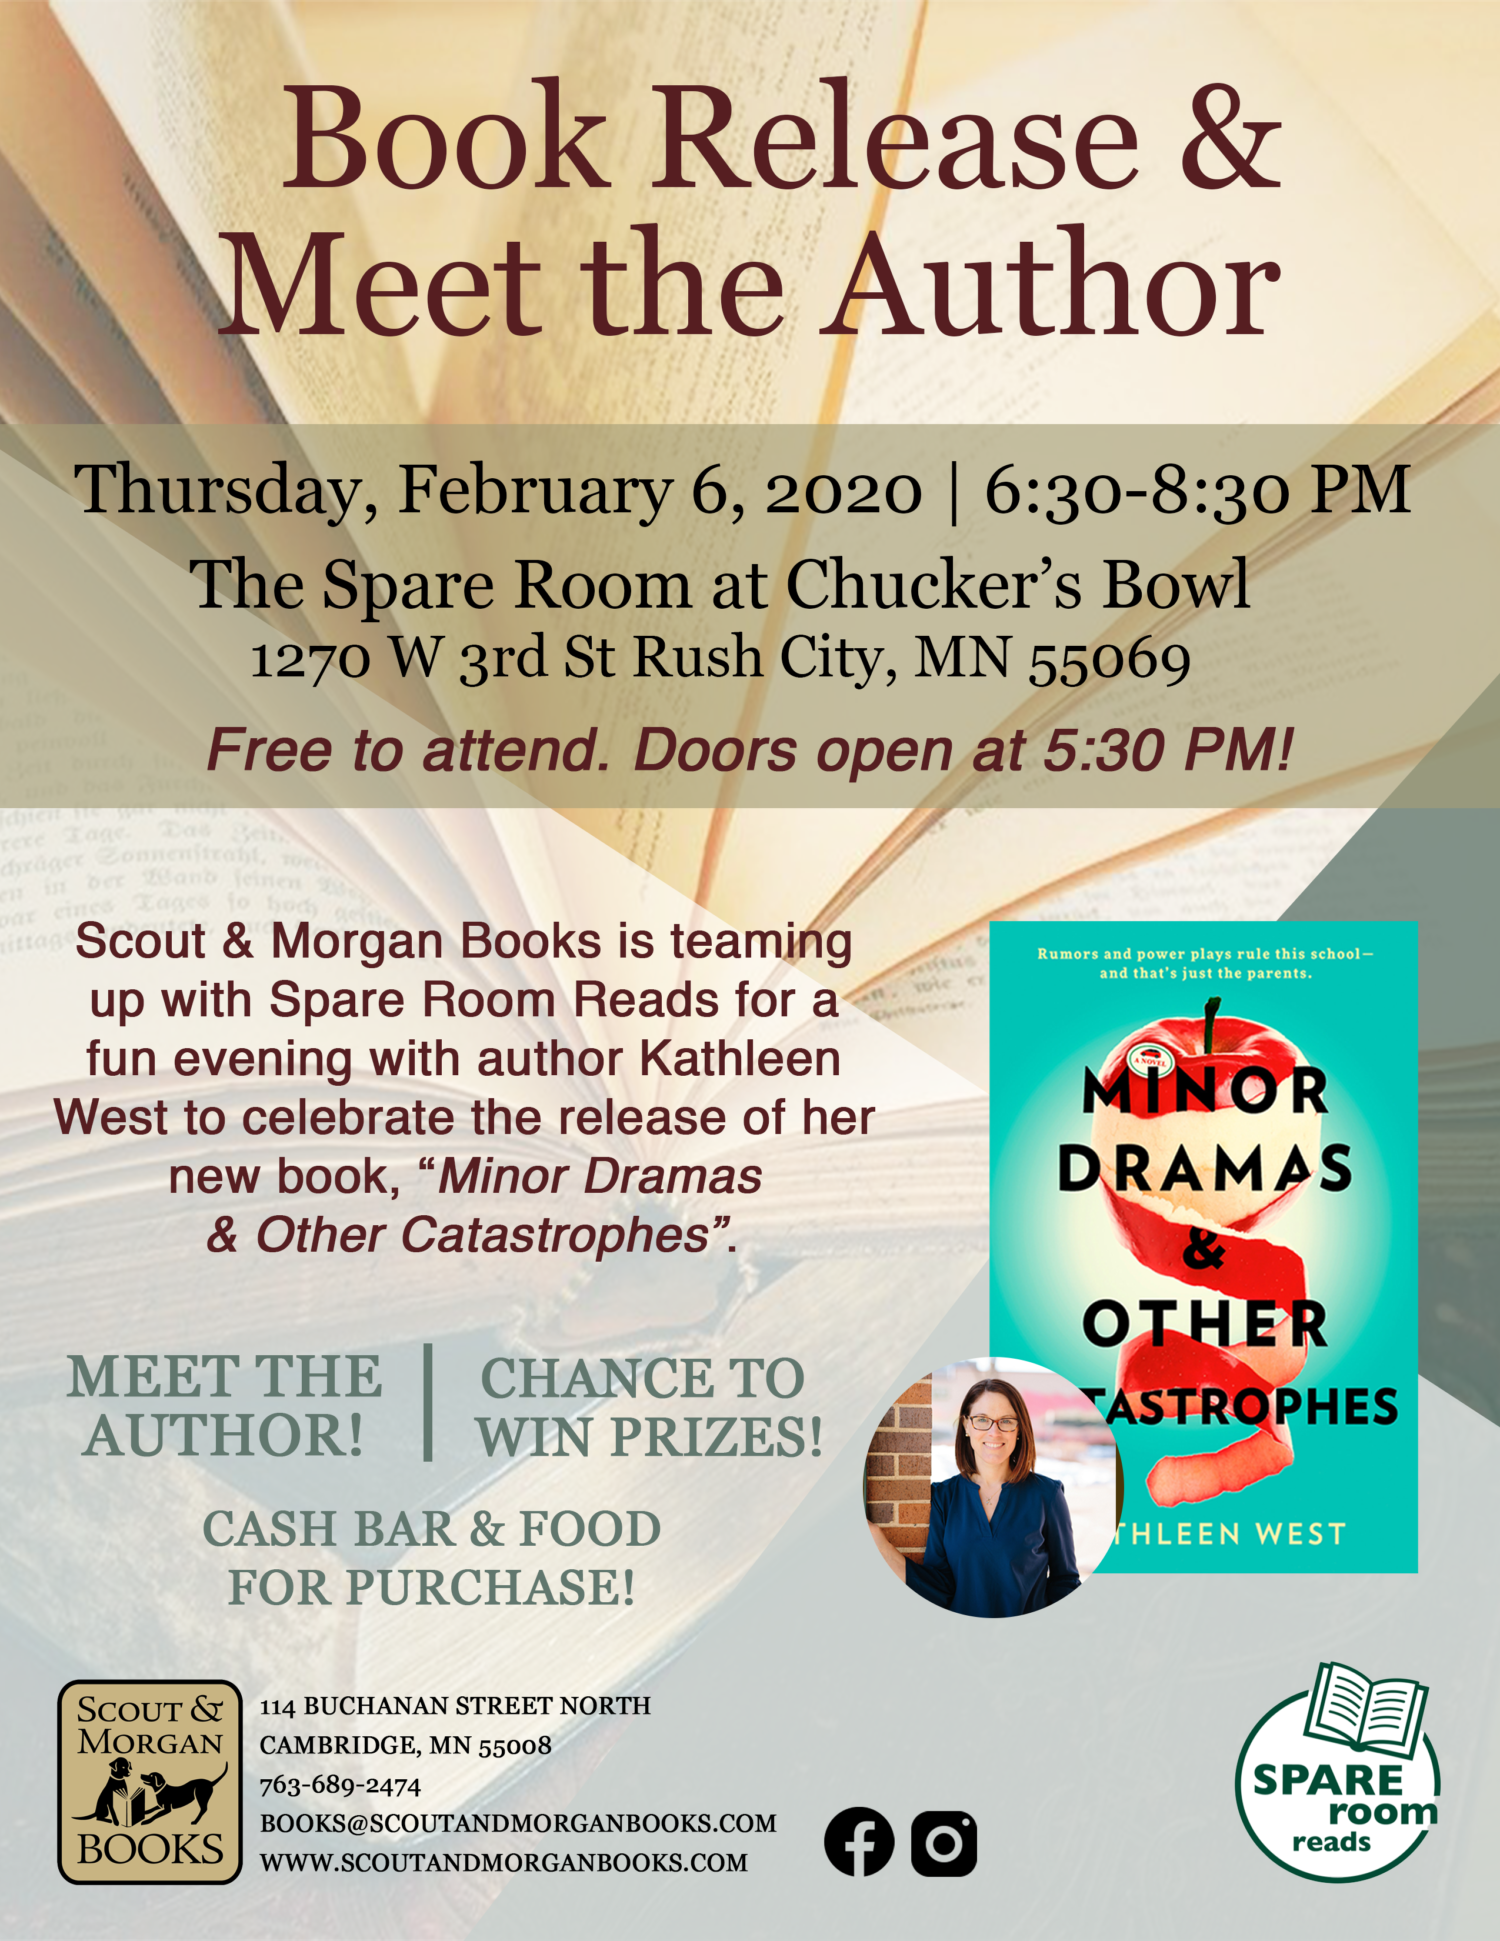 Minor Dramas & Other Catastrophes Book Release and Author Event!